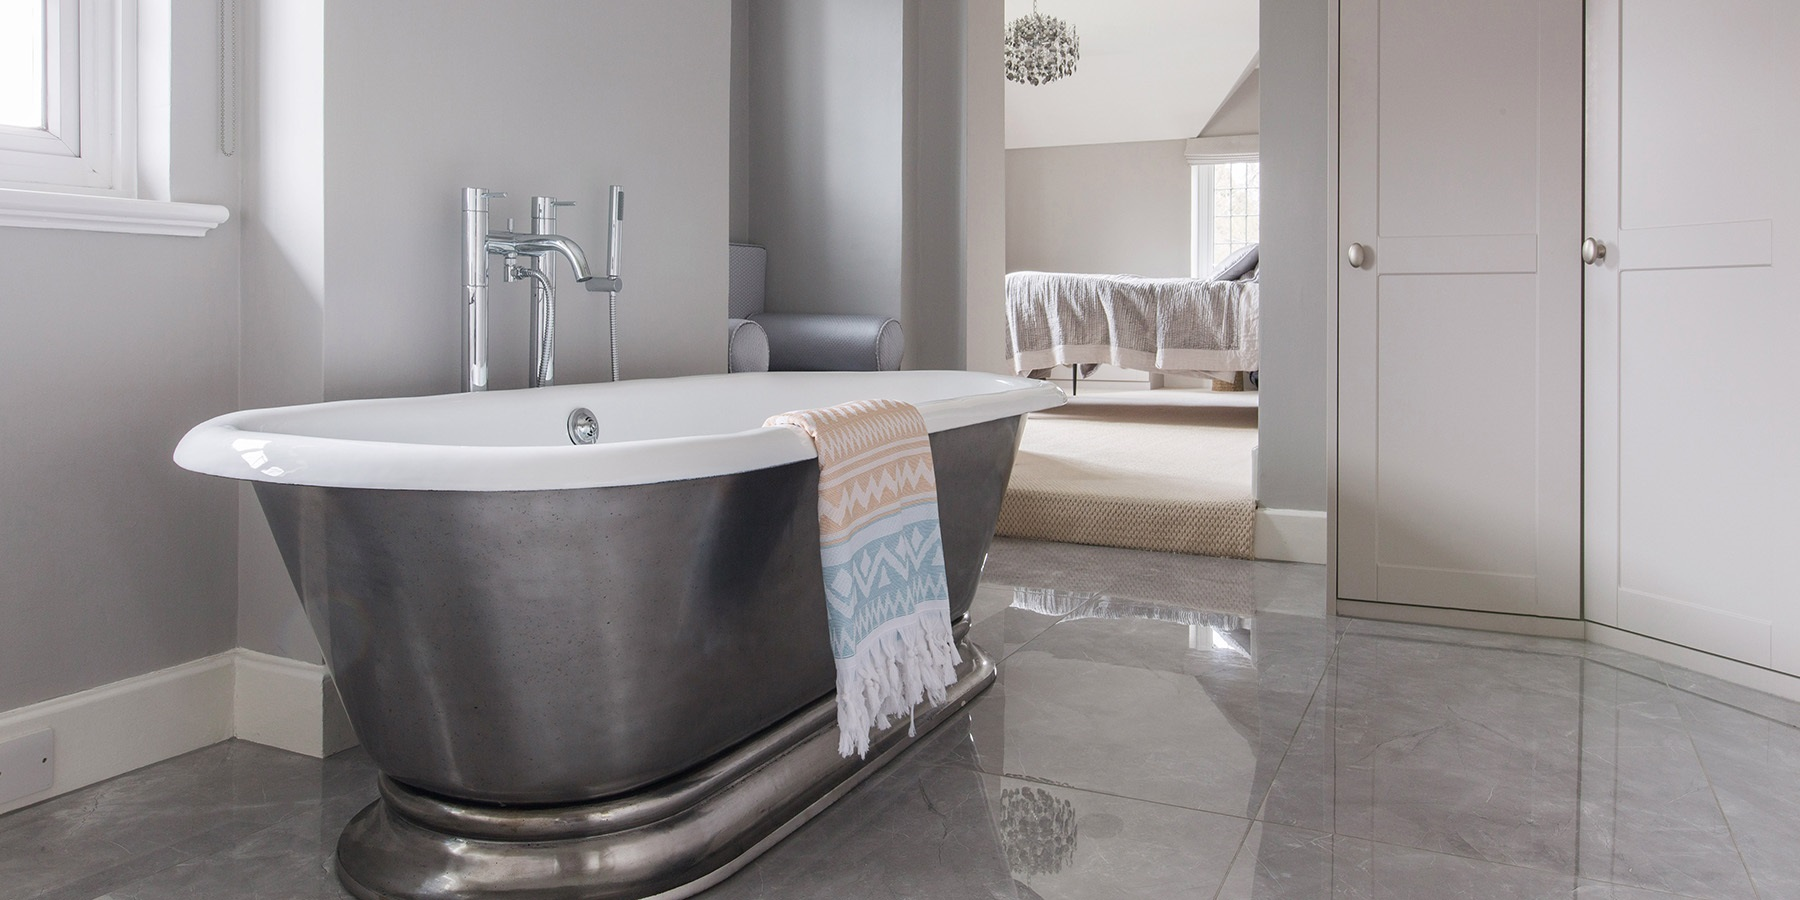 Your bathroom is a private oasis to unwind and relax - Burlanes will ensure you maximise the available space for your very own luxury spa retreat